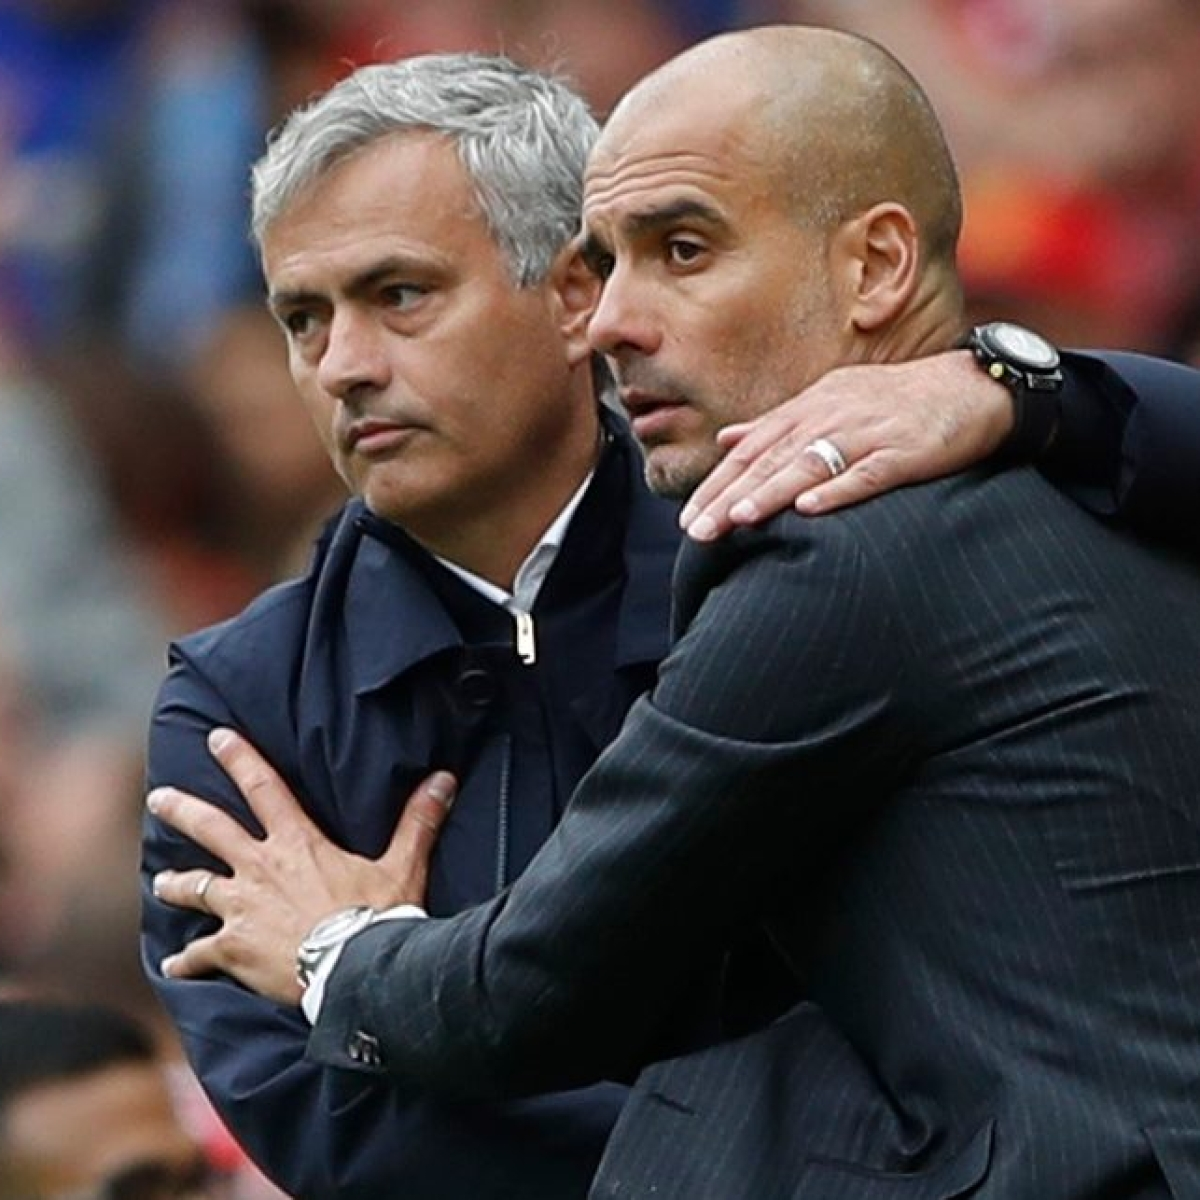 'More PL title contenders than anyone else': Manchester City's Pep Guardiola on Tottenham Hotspur